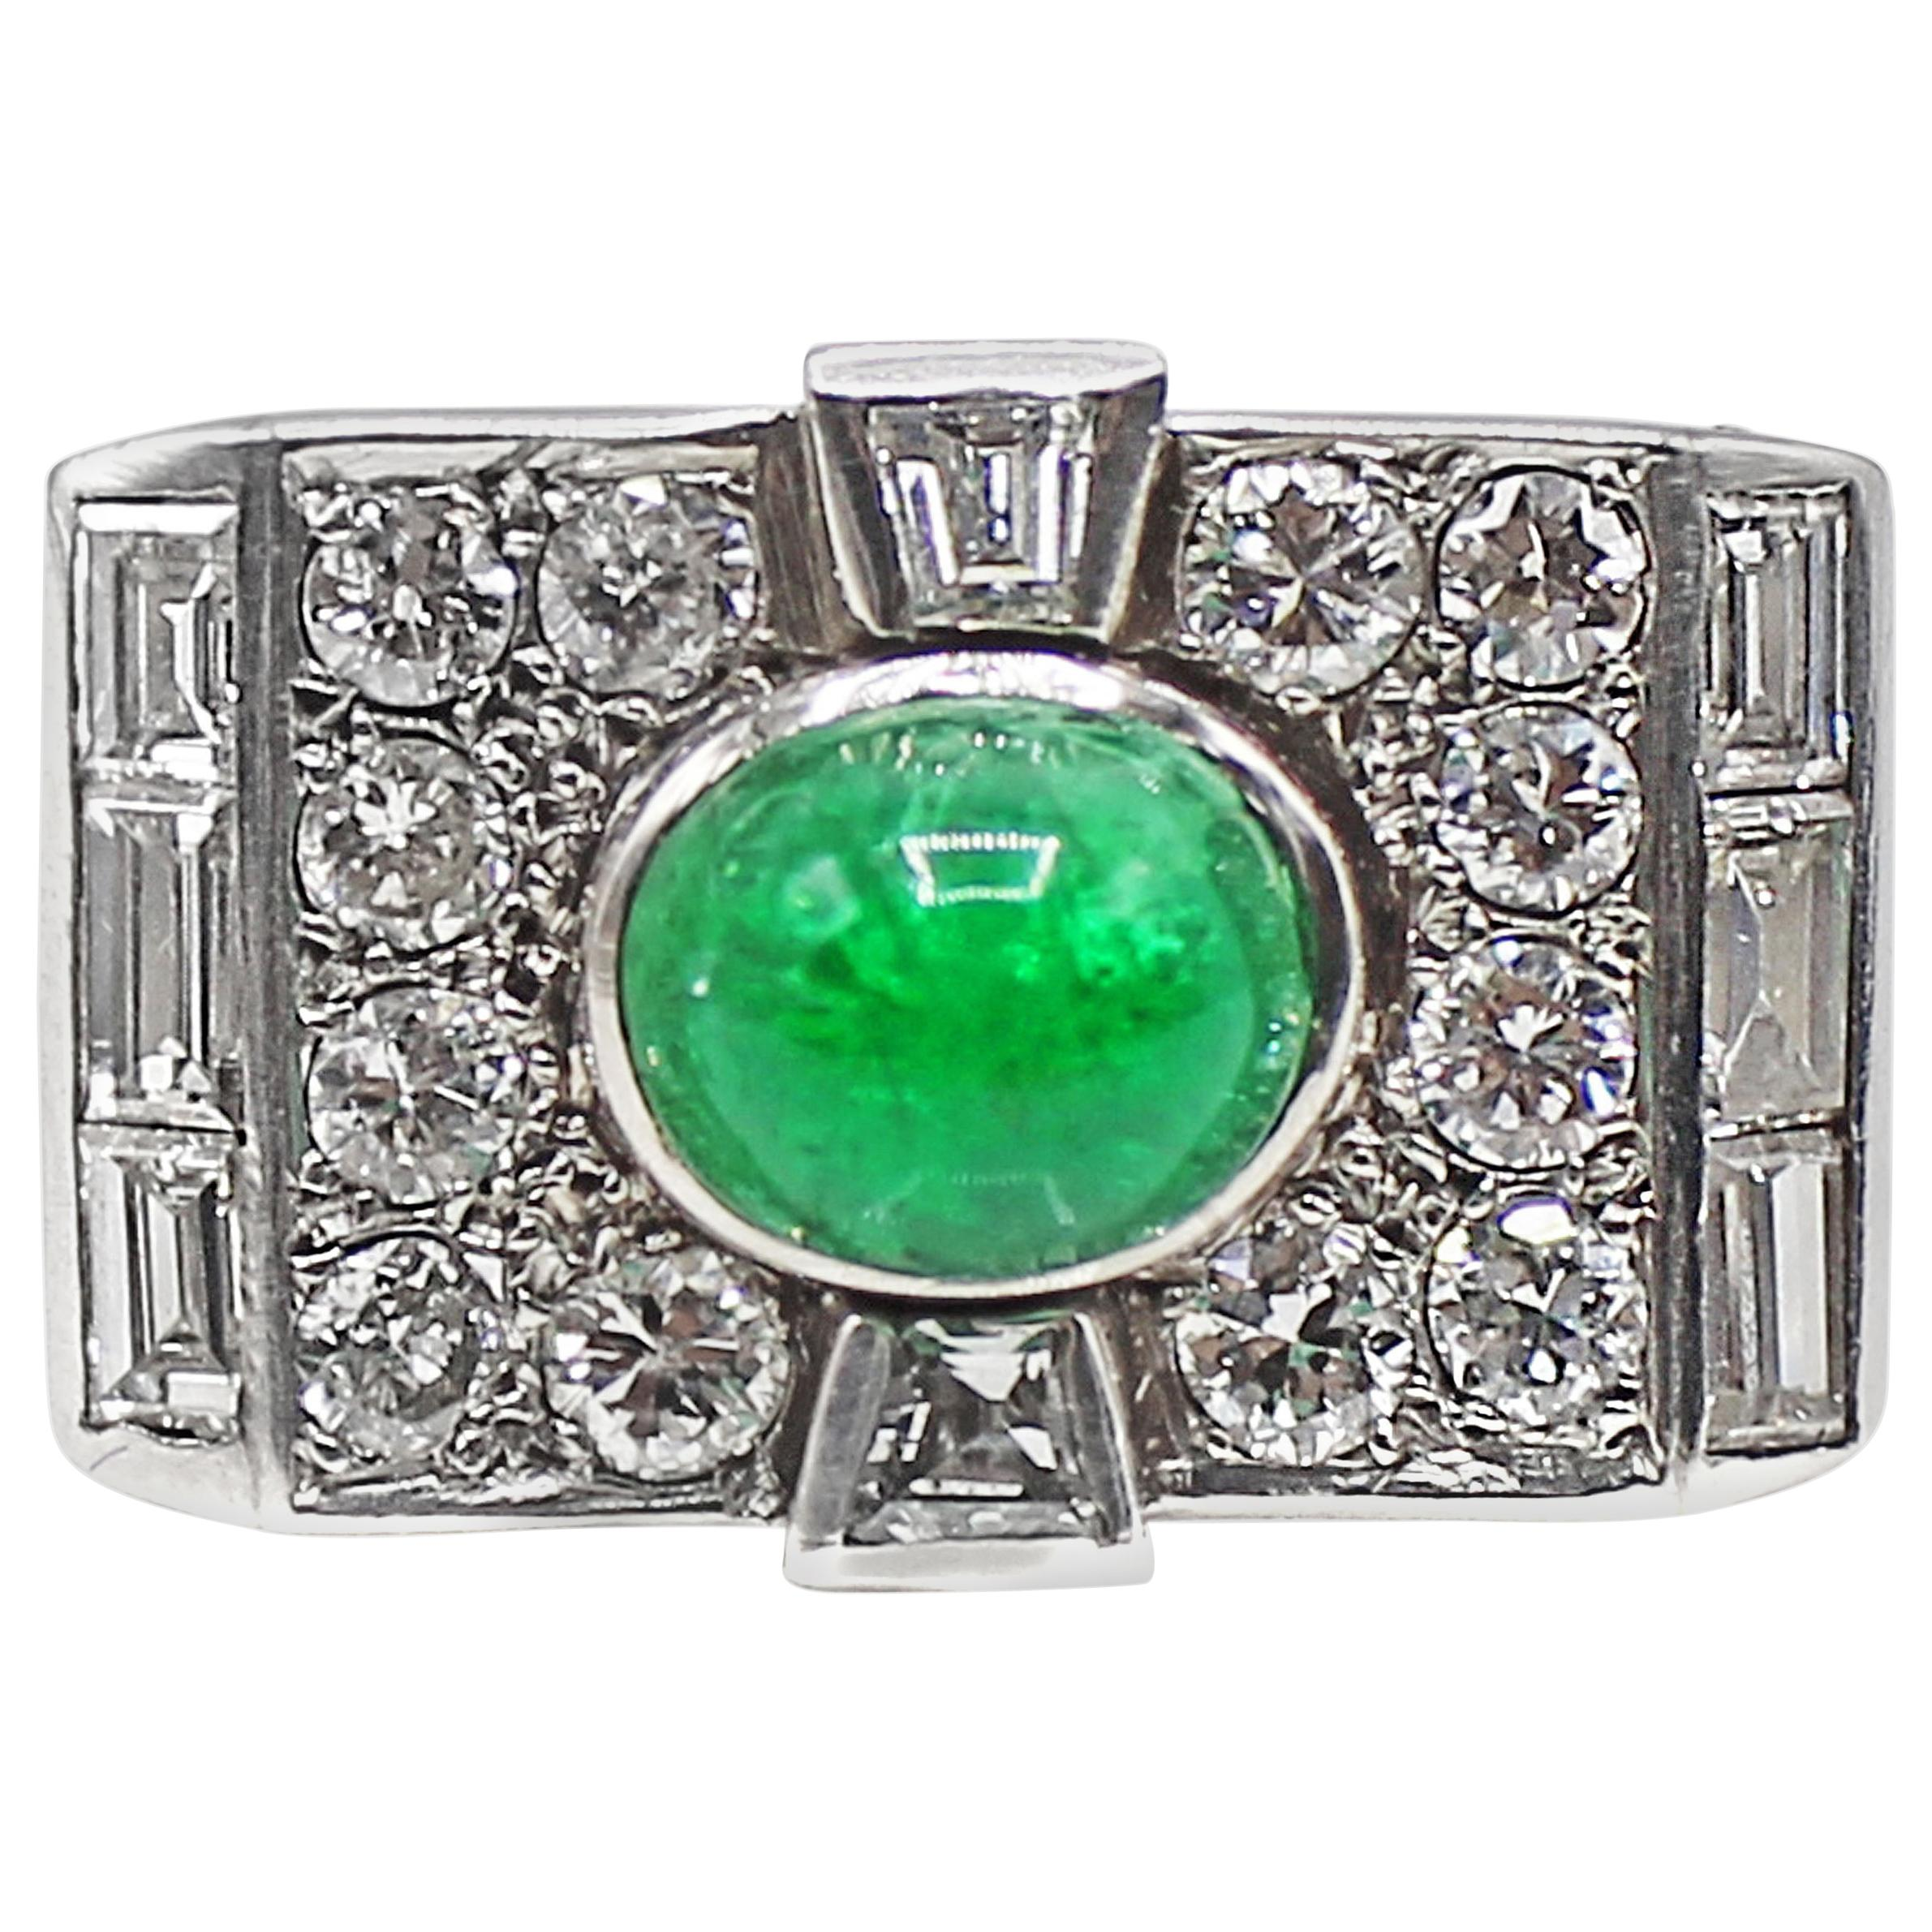 c2cd8d97d5d3d9 Antique and Vintage Rings and Diamond Rings For Sale at 1stdibs